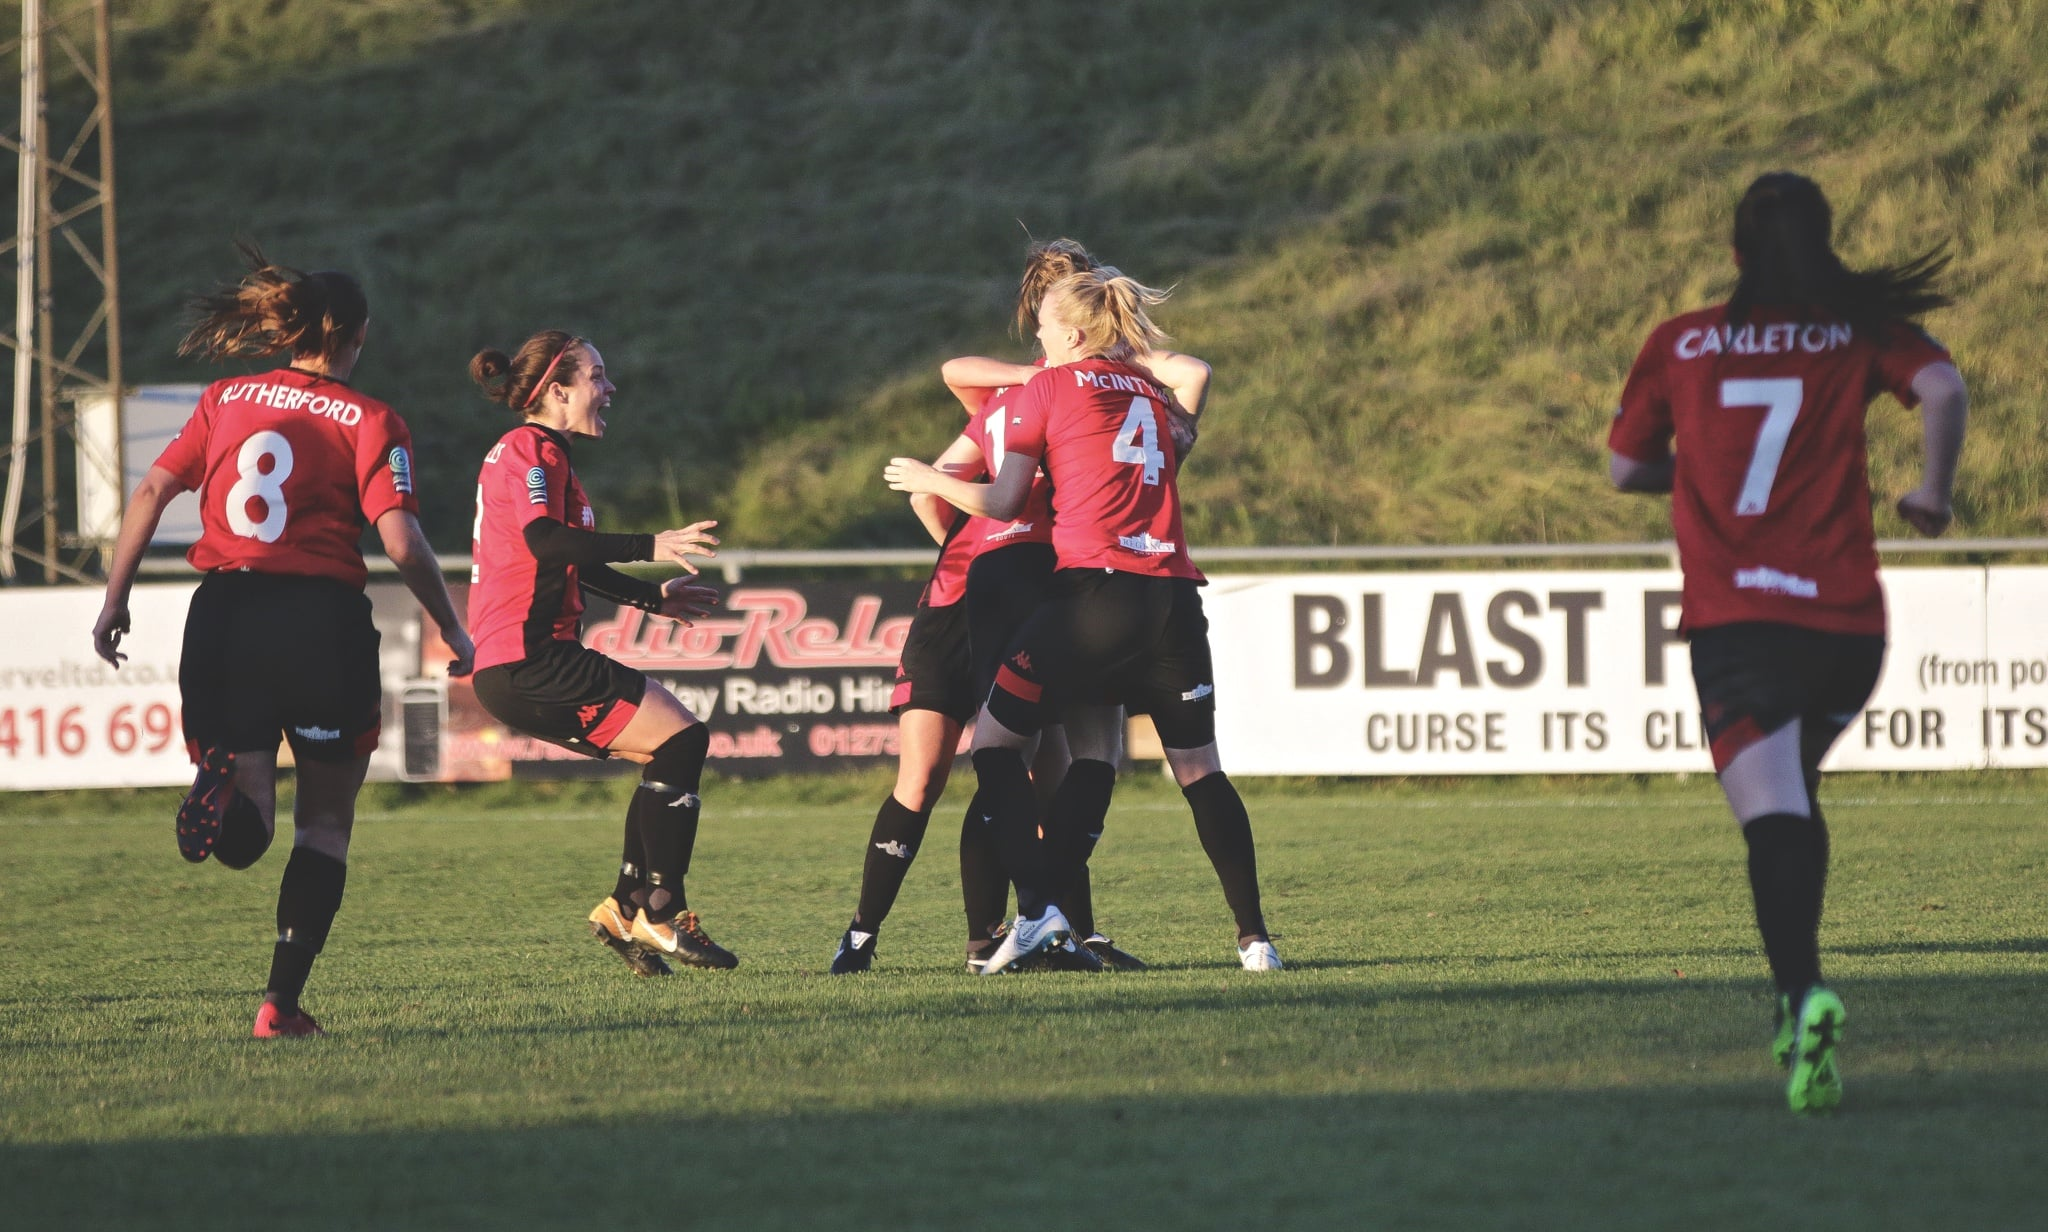 Lewes Women celebrate their equaliser against Aston Villa. Photo by James Boyes